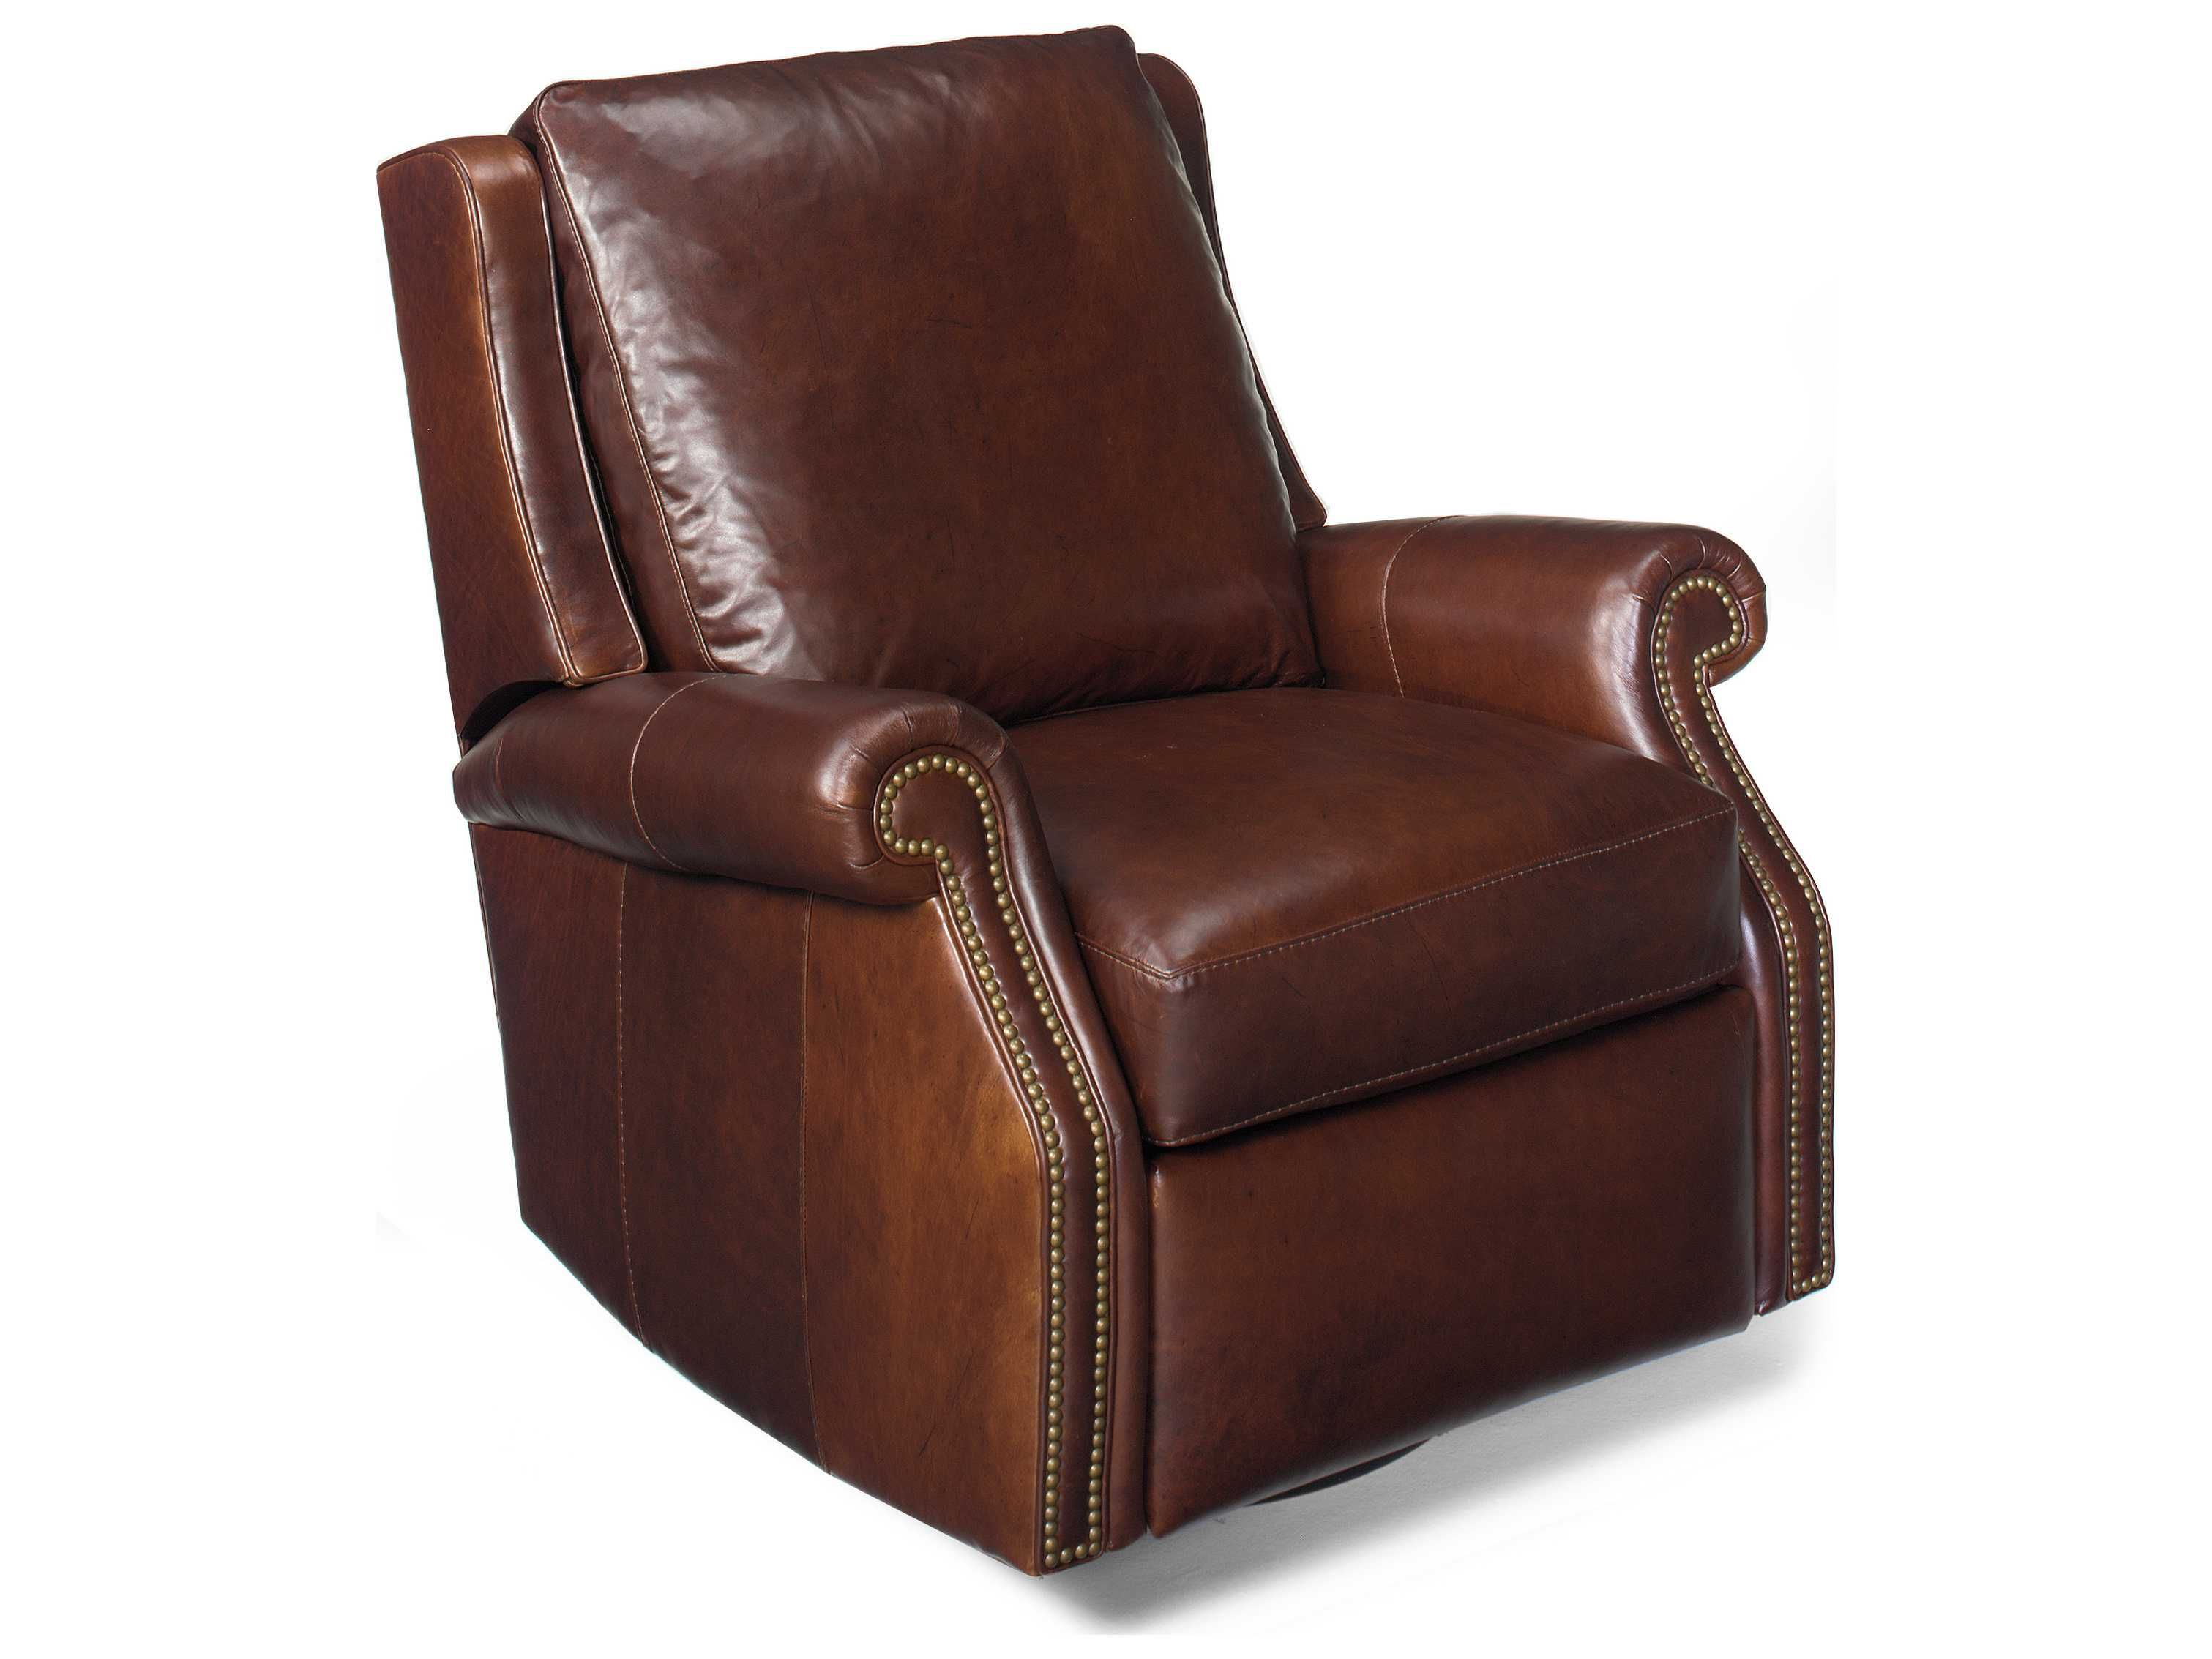 Bradington Young Furniture Recliners Sofas Wall Hugger Recliners Bradington Young Swivel Glider Recliner